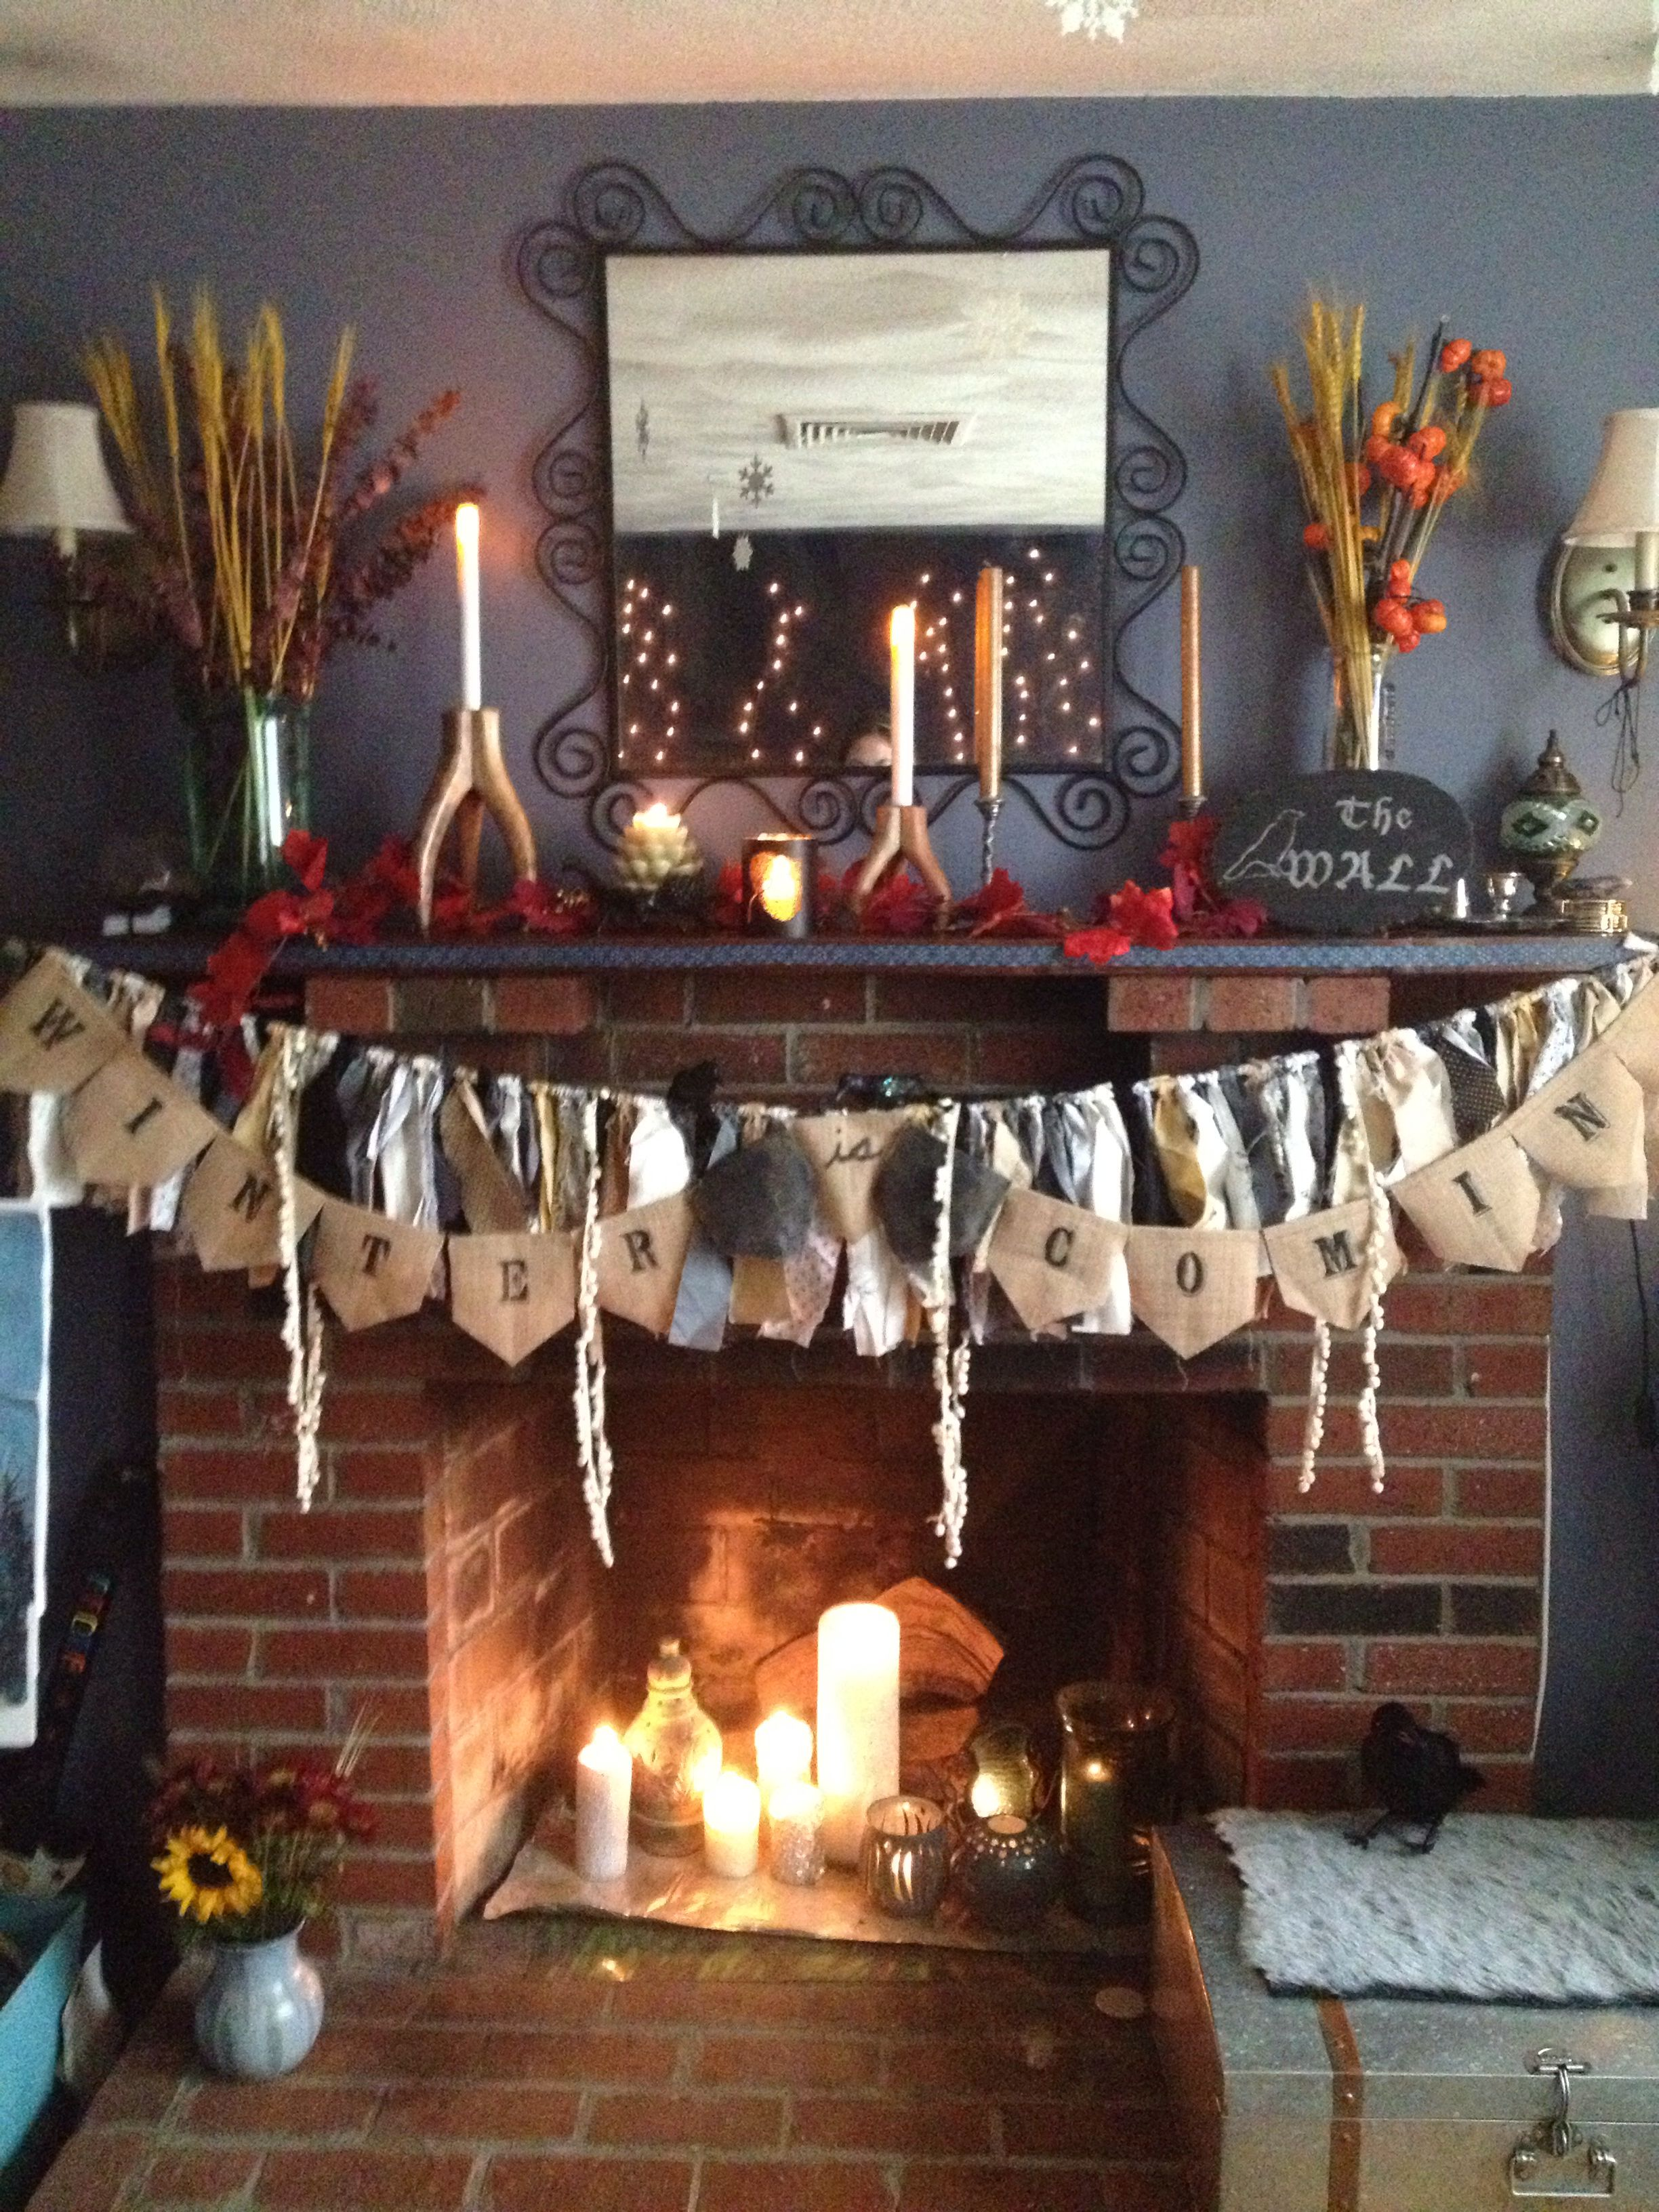 Game Of Thrones Party Decor Winter Is Coming The Wall Trending Decor Home Decor Ikea Bedroom Decor